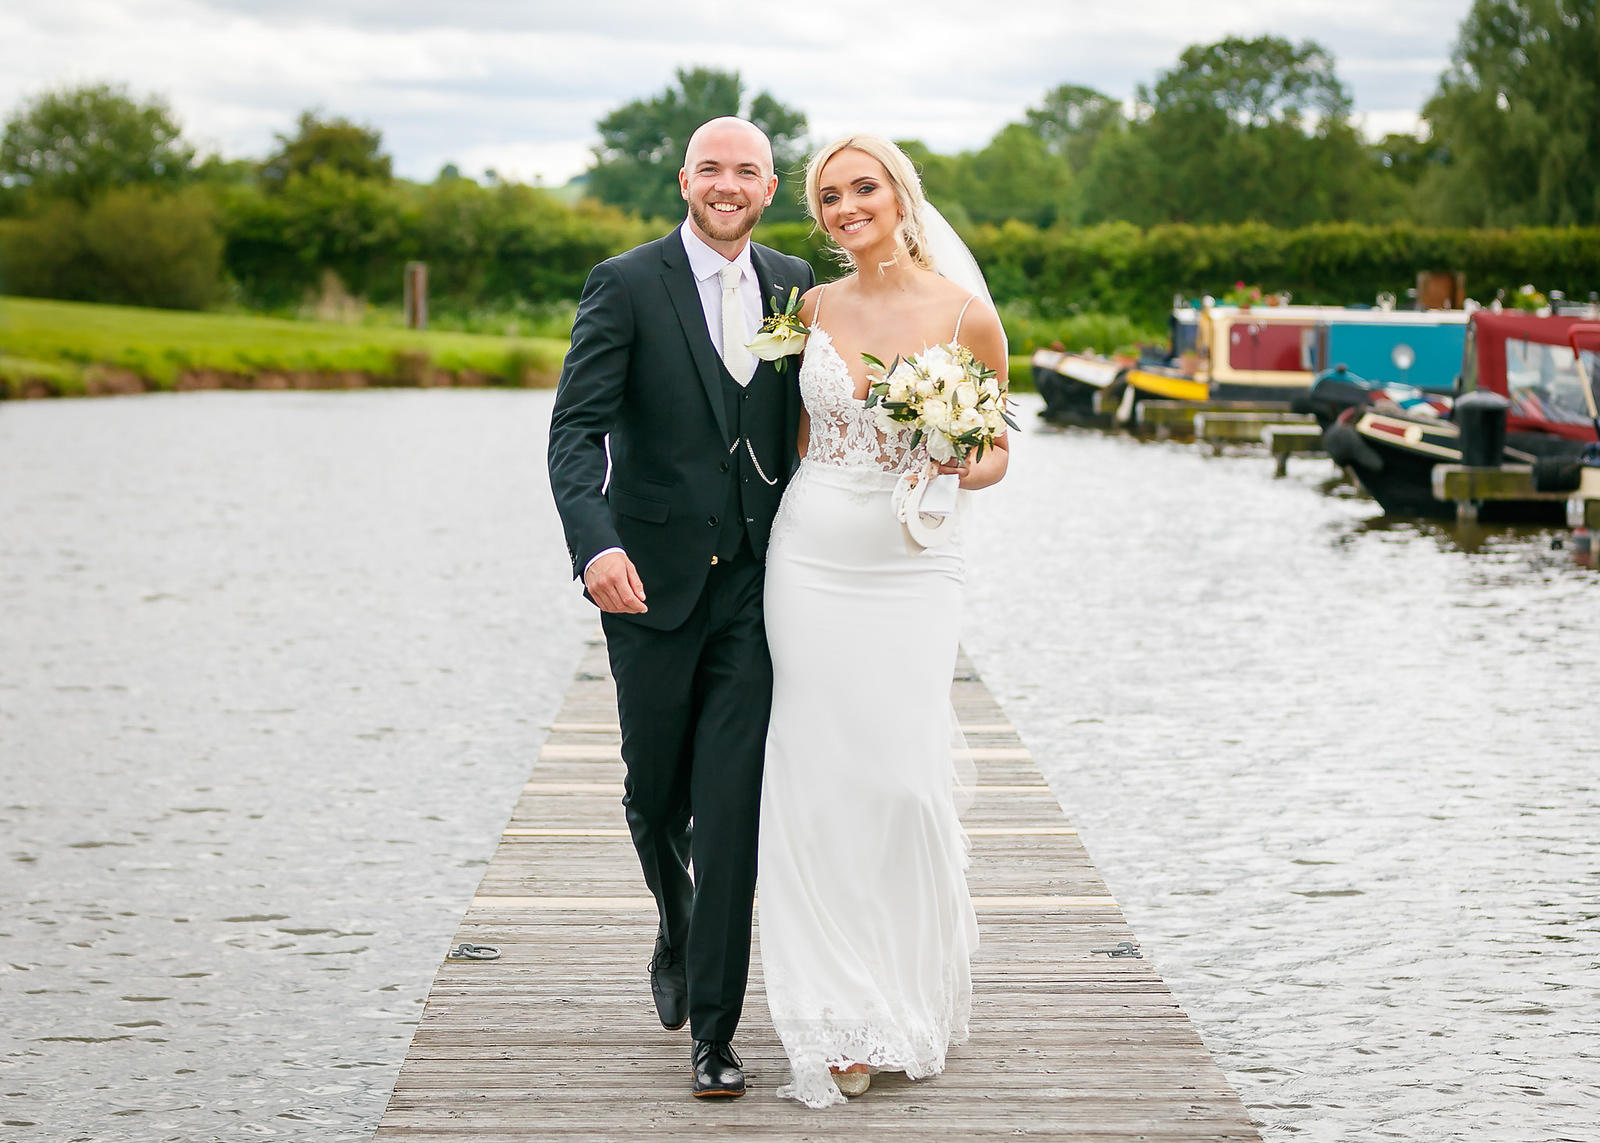 Wedding at Aston Marina, Stone, Staffordshire, UK